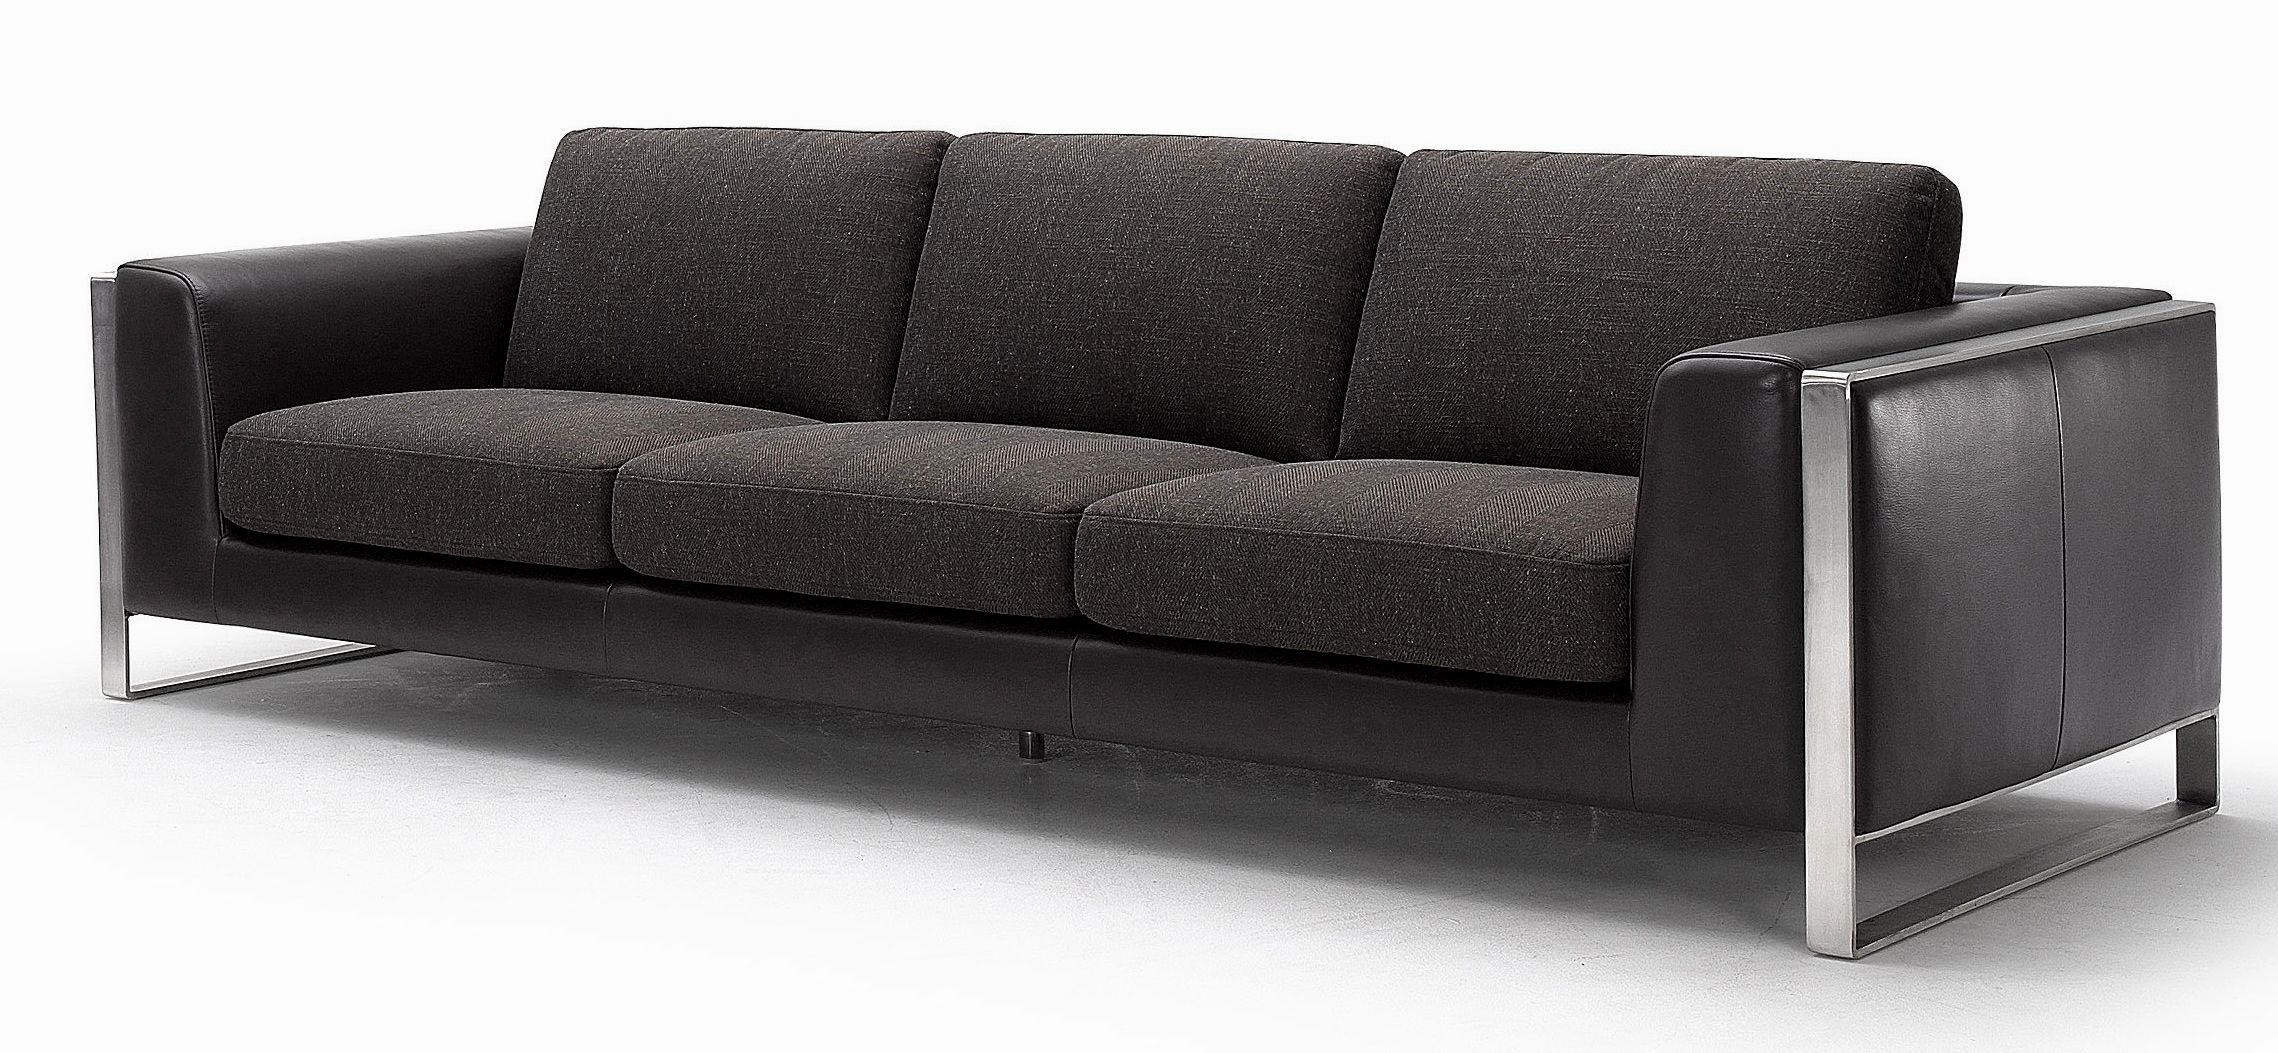 new sectional leather sofa design-Stylish Sectional Leather sofa Image